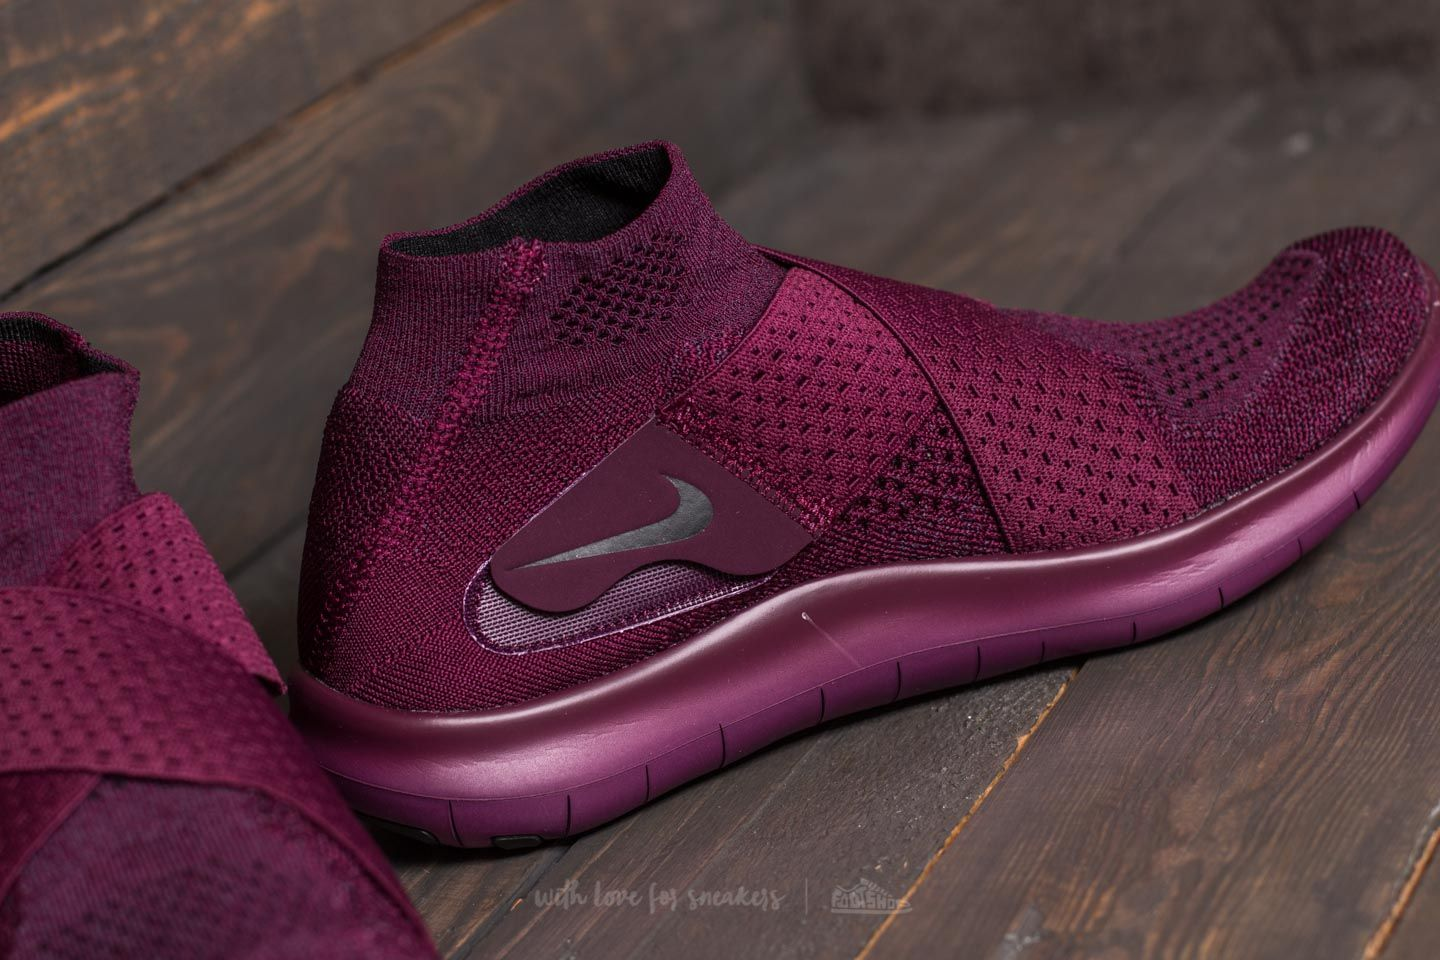 reputable site 68351 c1e2b Nike W Free RN Motion Flyknit 2017 Bordeaux/ Black-Dark ...